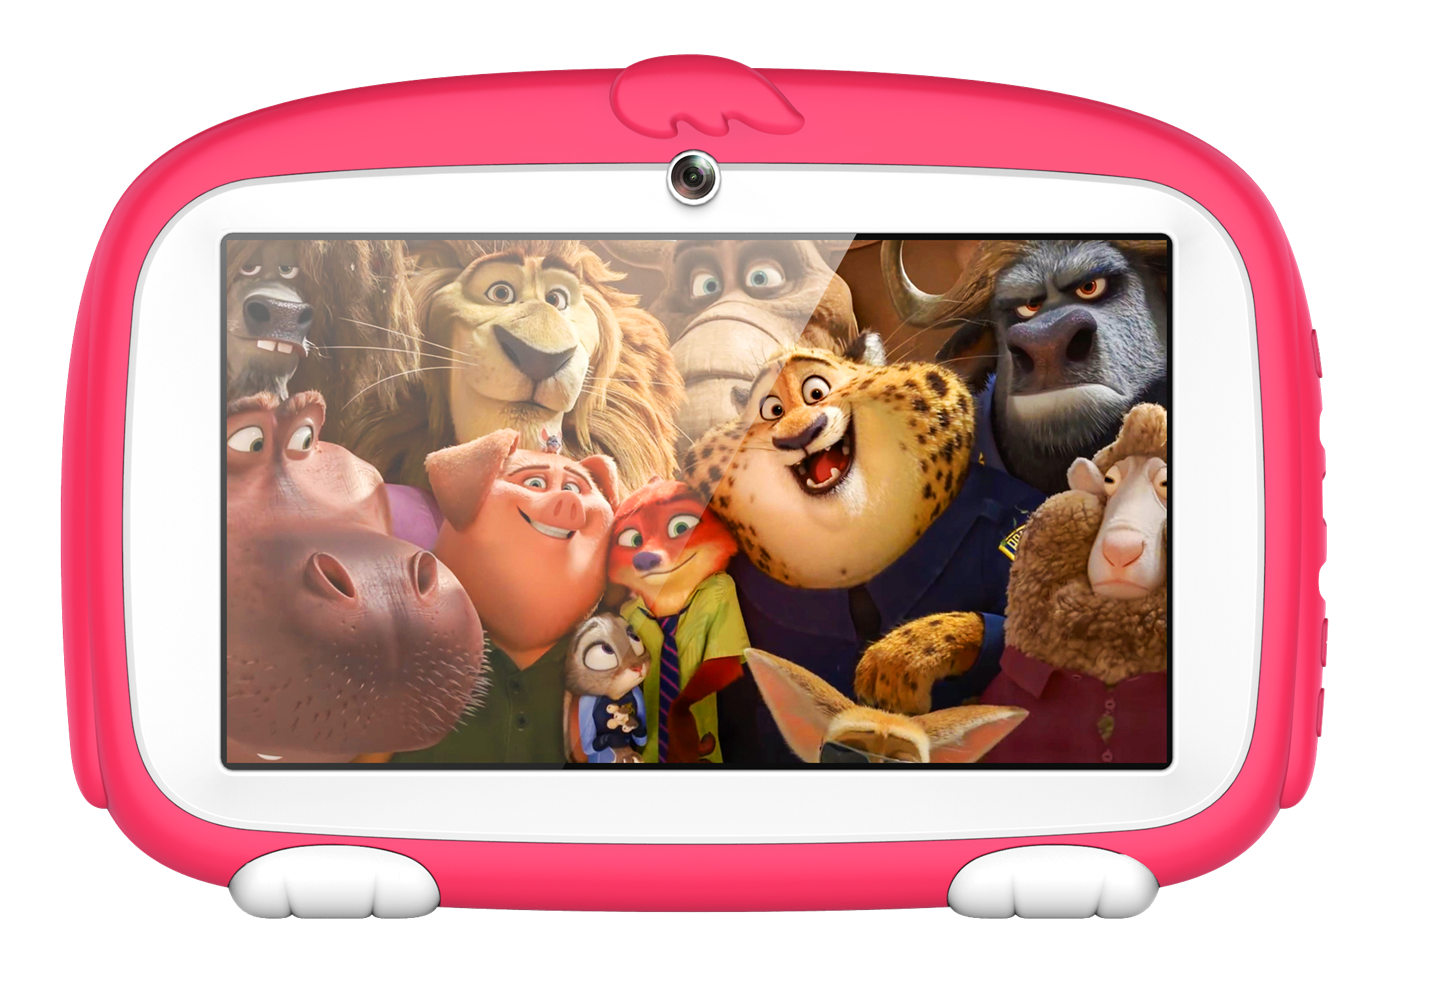 images/bulk-wholesale/Android-Tablet-Computer-For-Kids-7-Inch-Display-HD-Visuals-4000mAh-Battery-Sophisticated-Hardware-WiFi-Red-plusbuyer_0.jpg